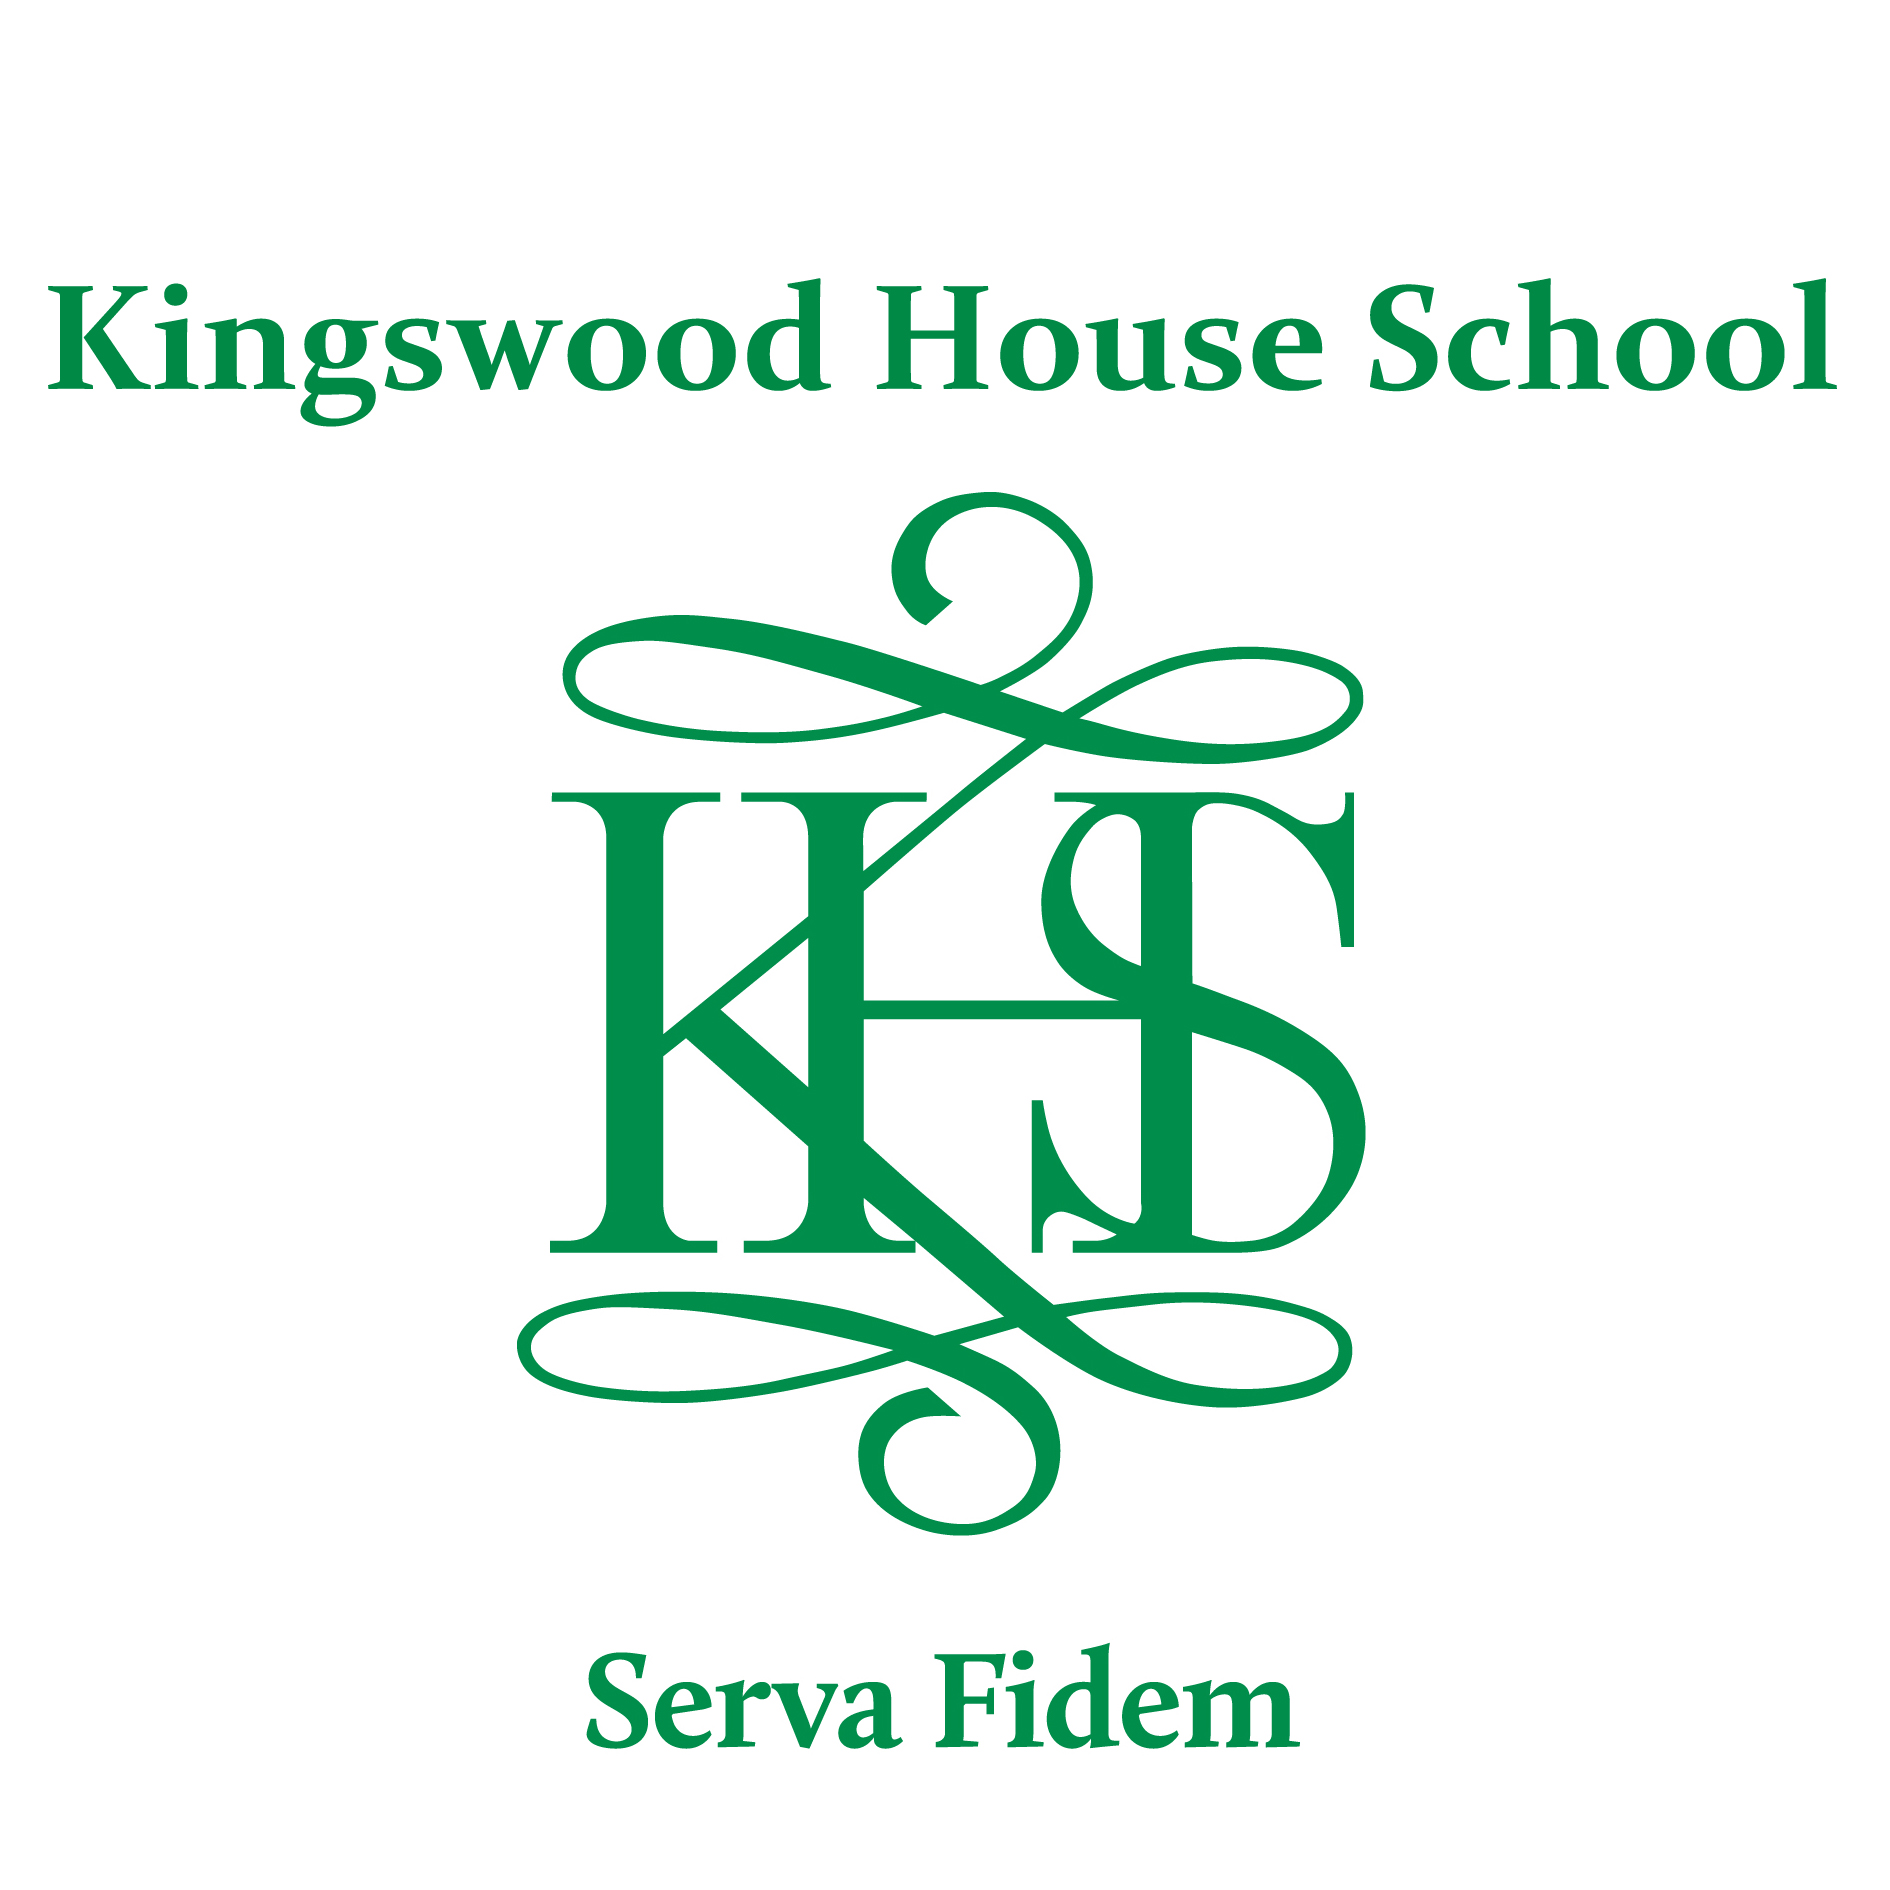 Kingswood House School logo